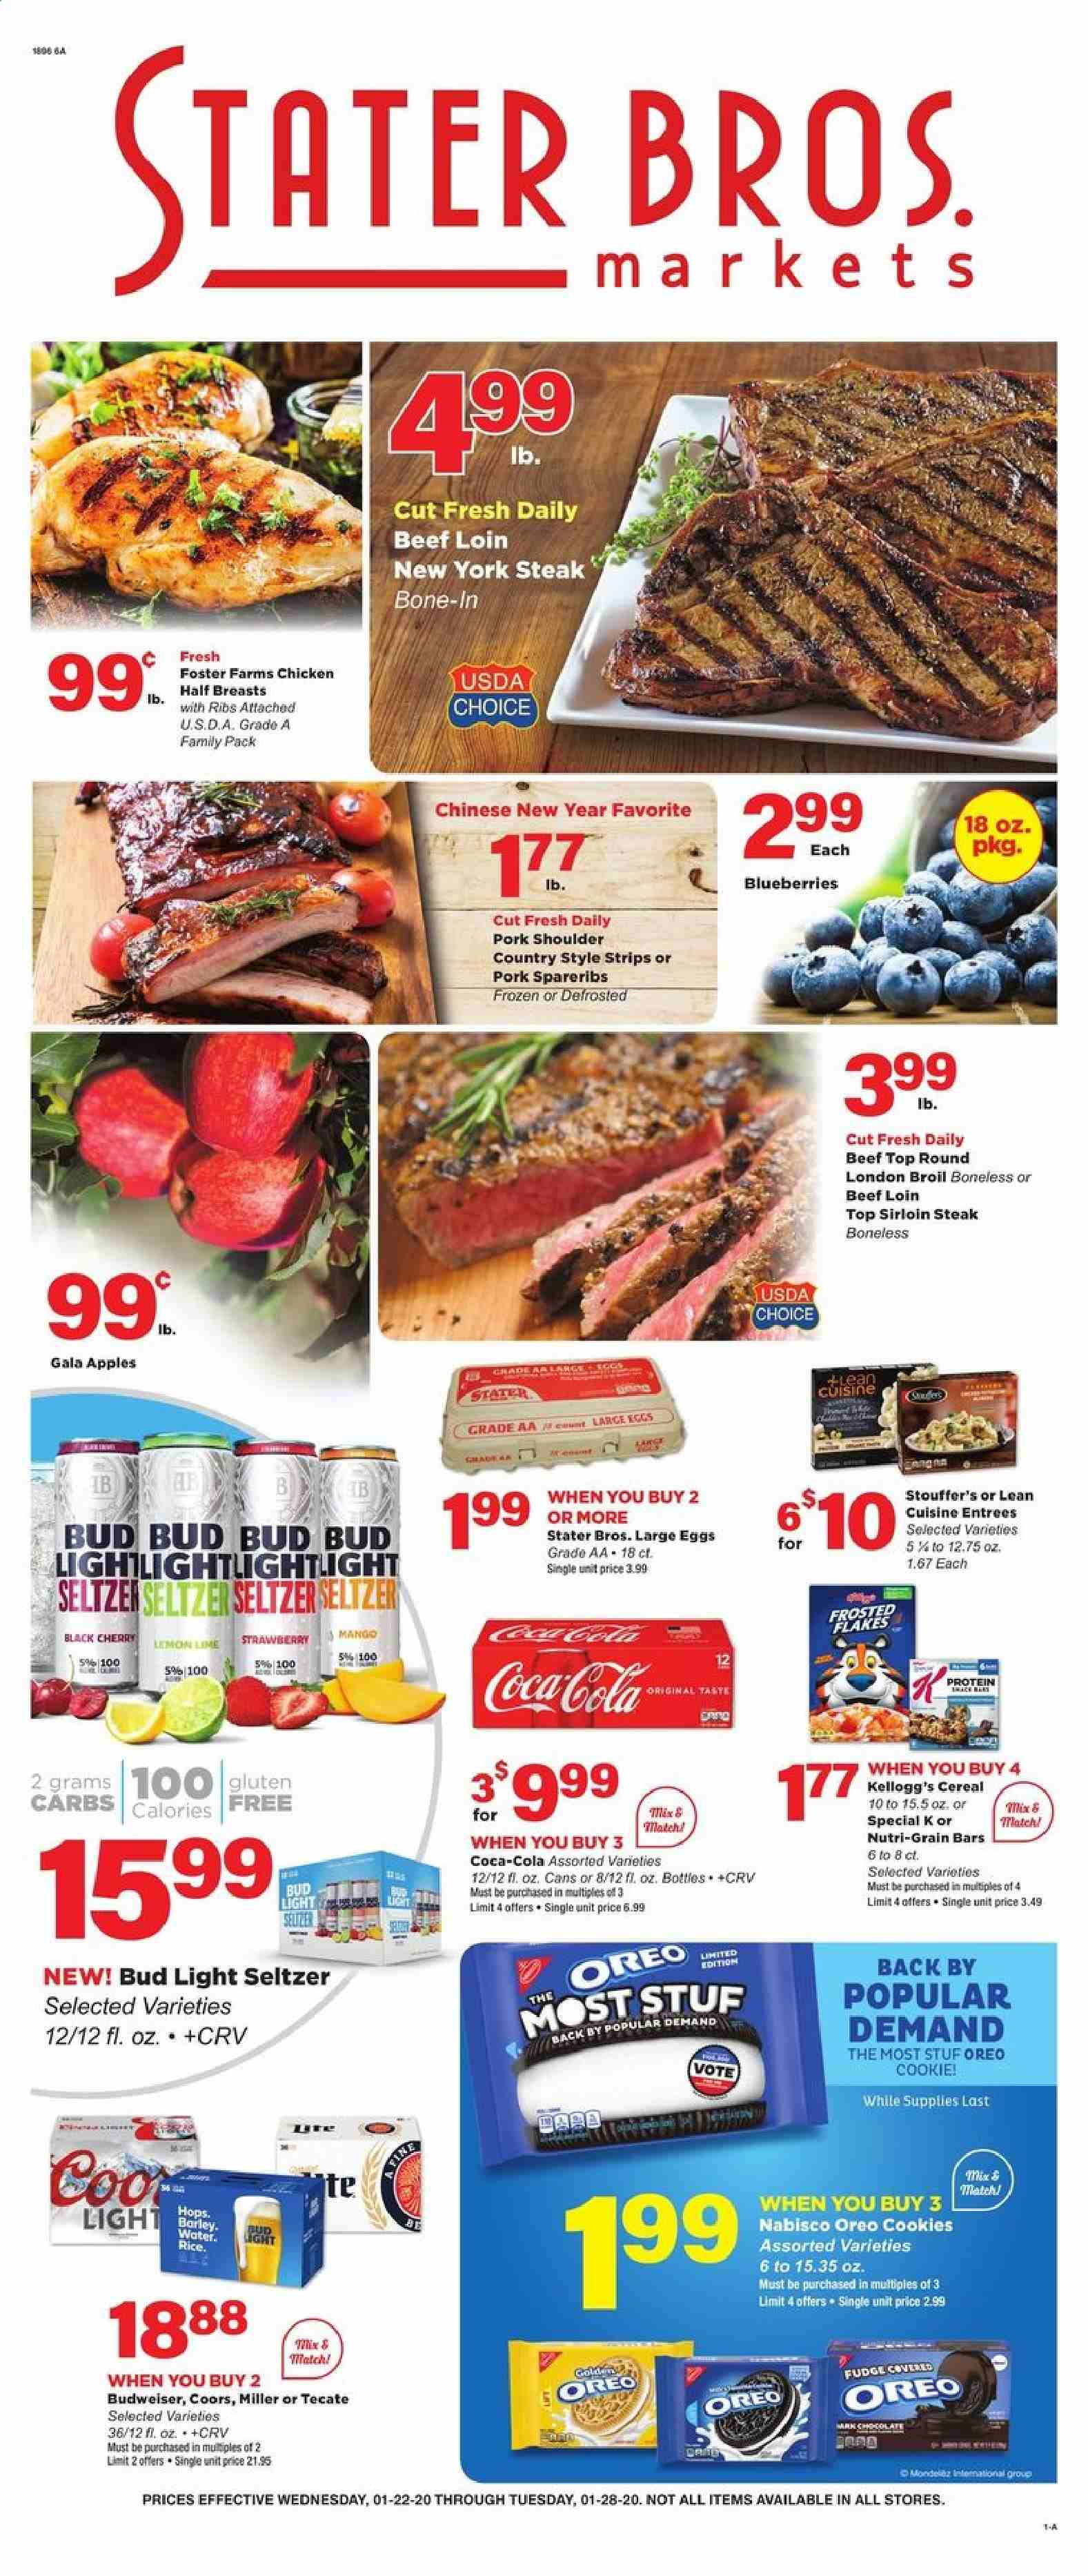 Stater Bros. Flyer - 01.22.2020 - 01.28.2020 - Sales products - Budweiser, Coors, blueberries, apples, Lean Cuisine, Oreo, large eggs, mango, strips, Stouffer's, cookies, Fudge, Kellogg's, Nutri-Grain bars, cereals, Frosted Flakes, Coca-Cola, seltzer water, beer, Bud Light, Miller, chicken, beef sirloin, steak, sirloin steak, pork meat, pork shoulder, pork spare ribs, water. Page 1.